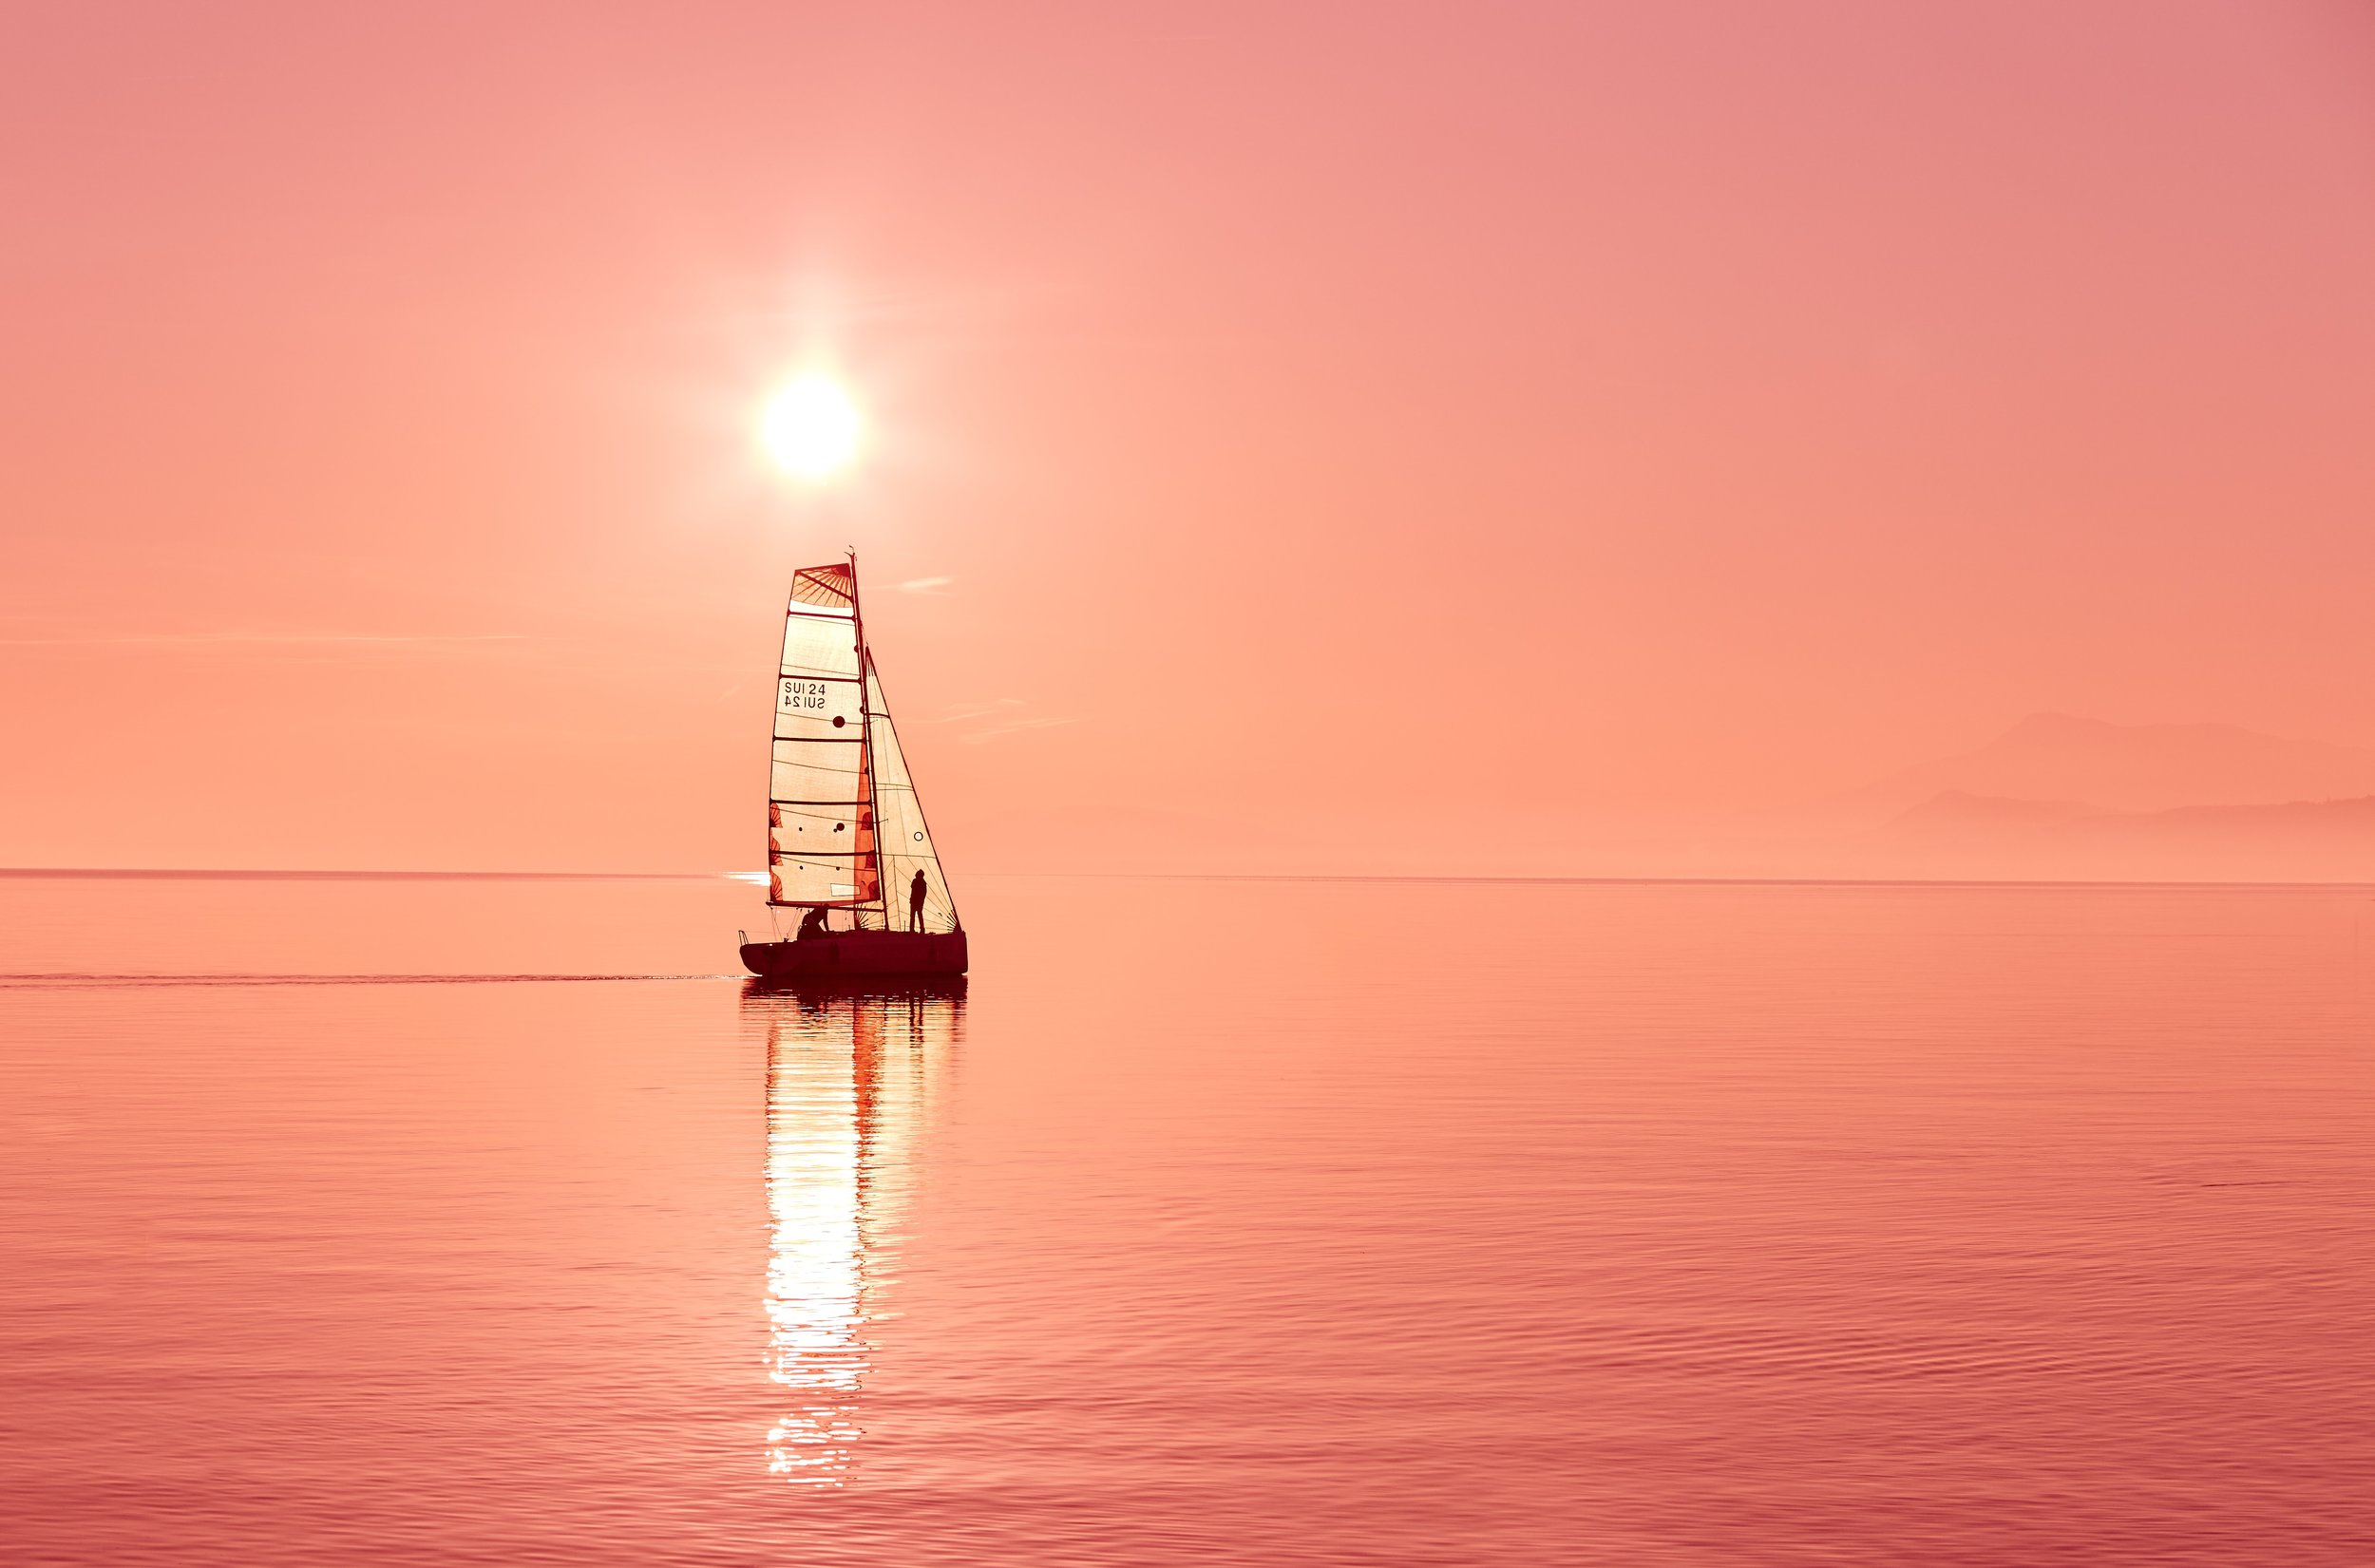 Setting Sail - If you're ready to set a course to exciting new personal and professional lands, I'd love to speak with you. Click the button below to schedule a free consultation.